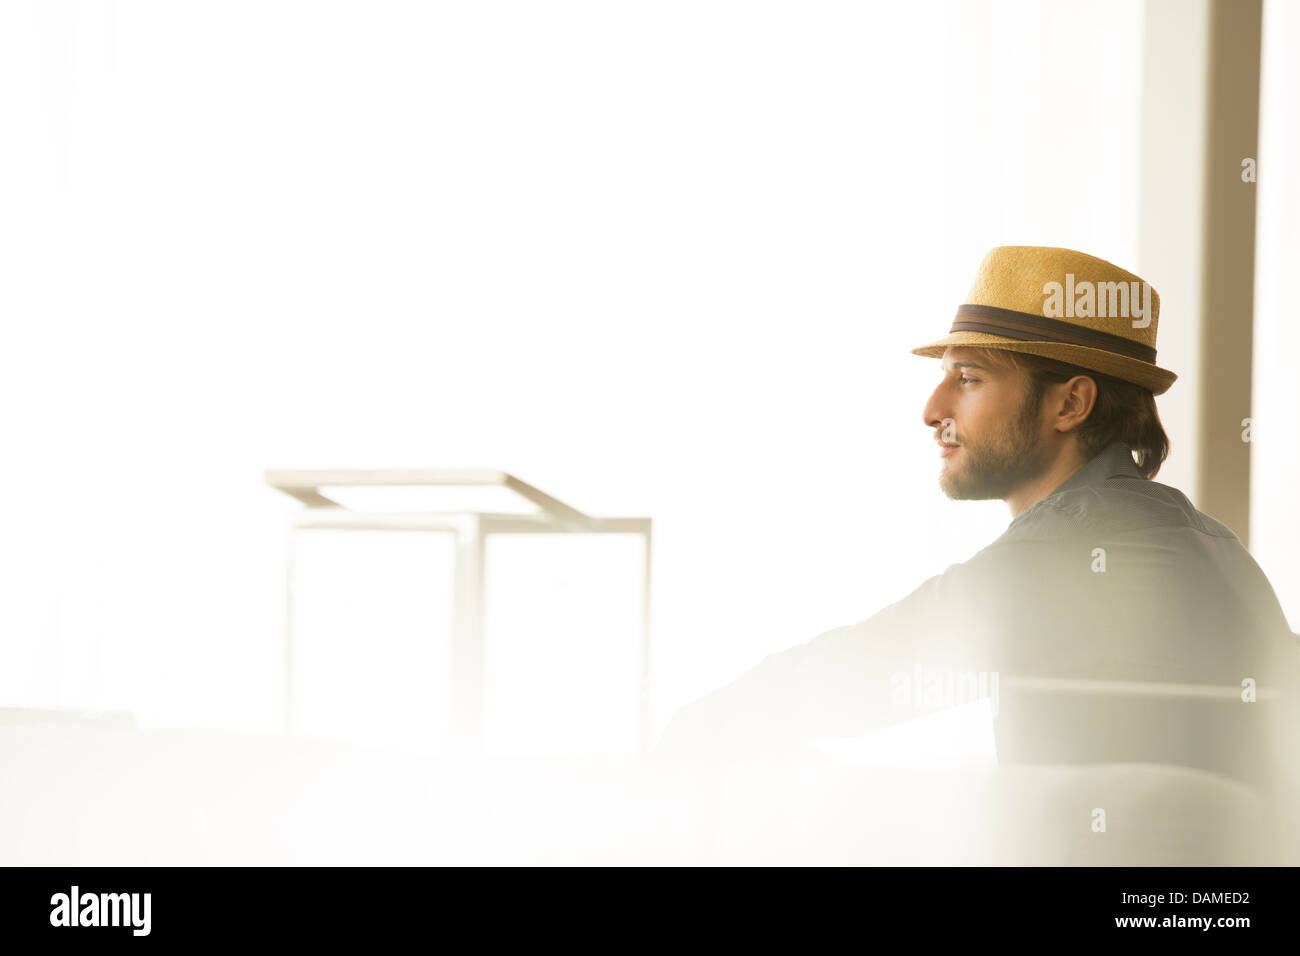 Man in straw hat looking out window - Stock Image